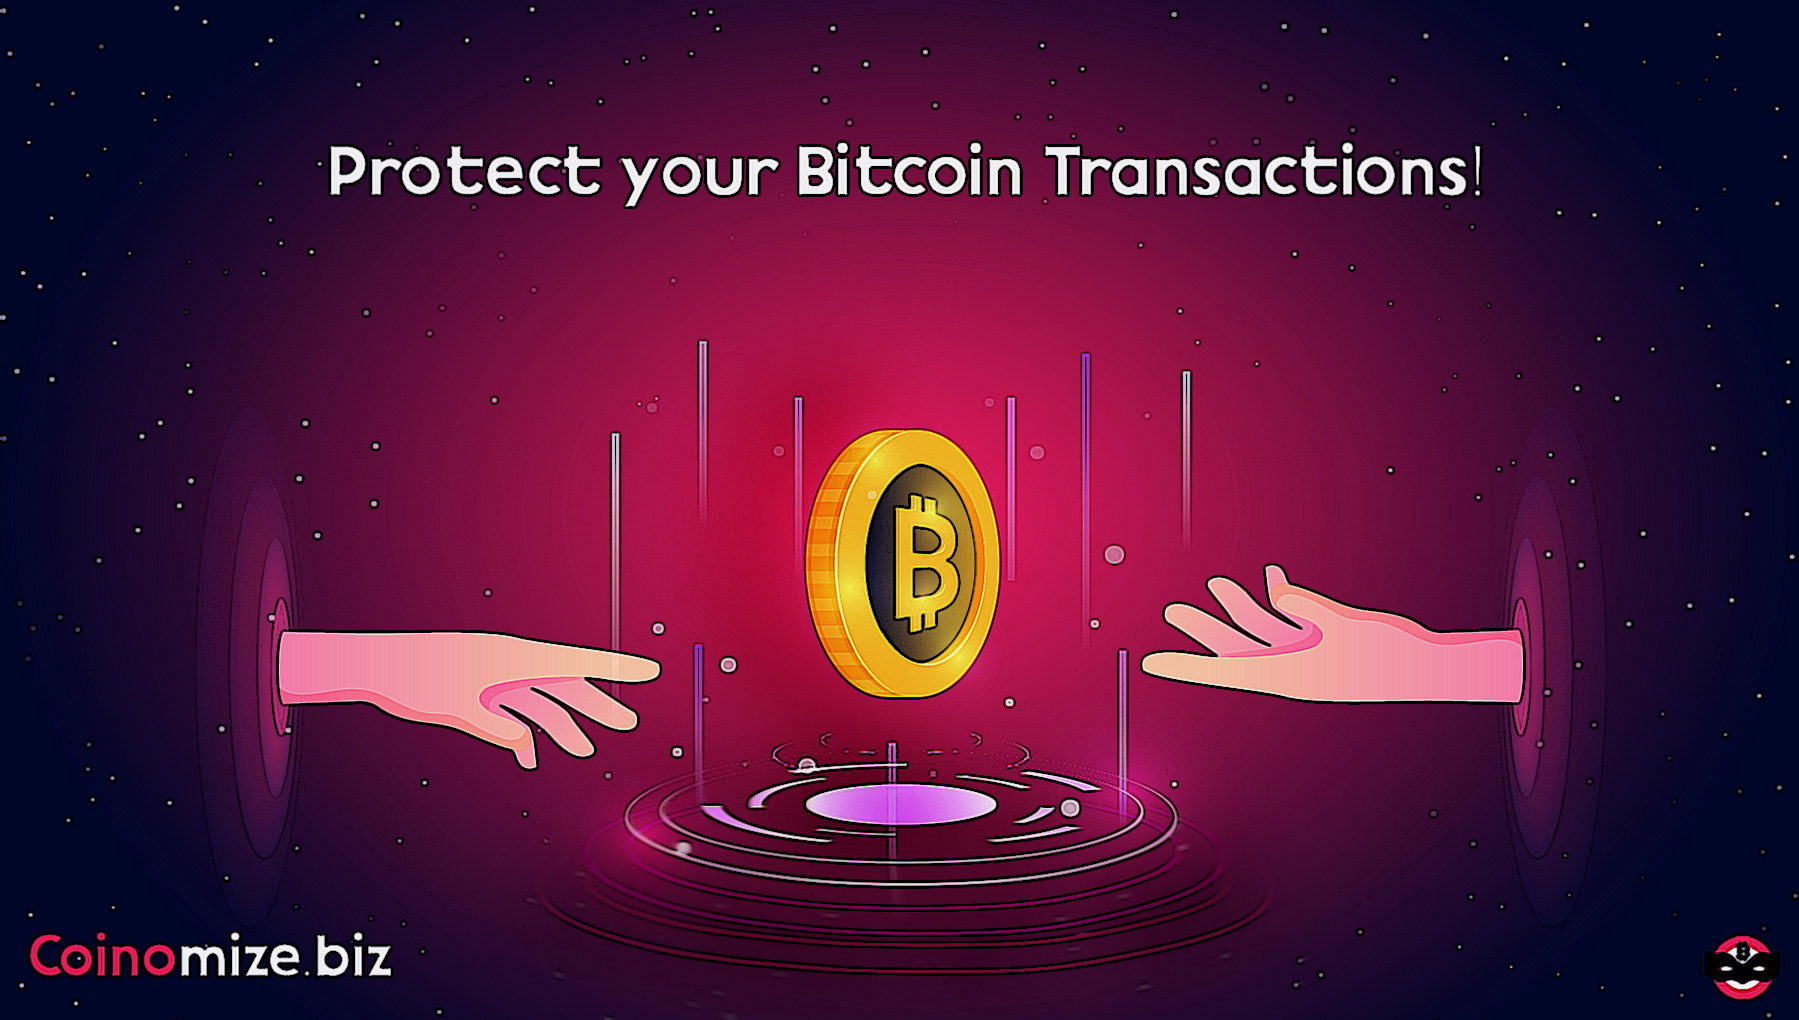 Protect your Bitcoin Transactions